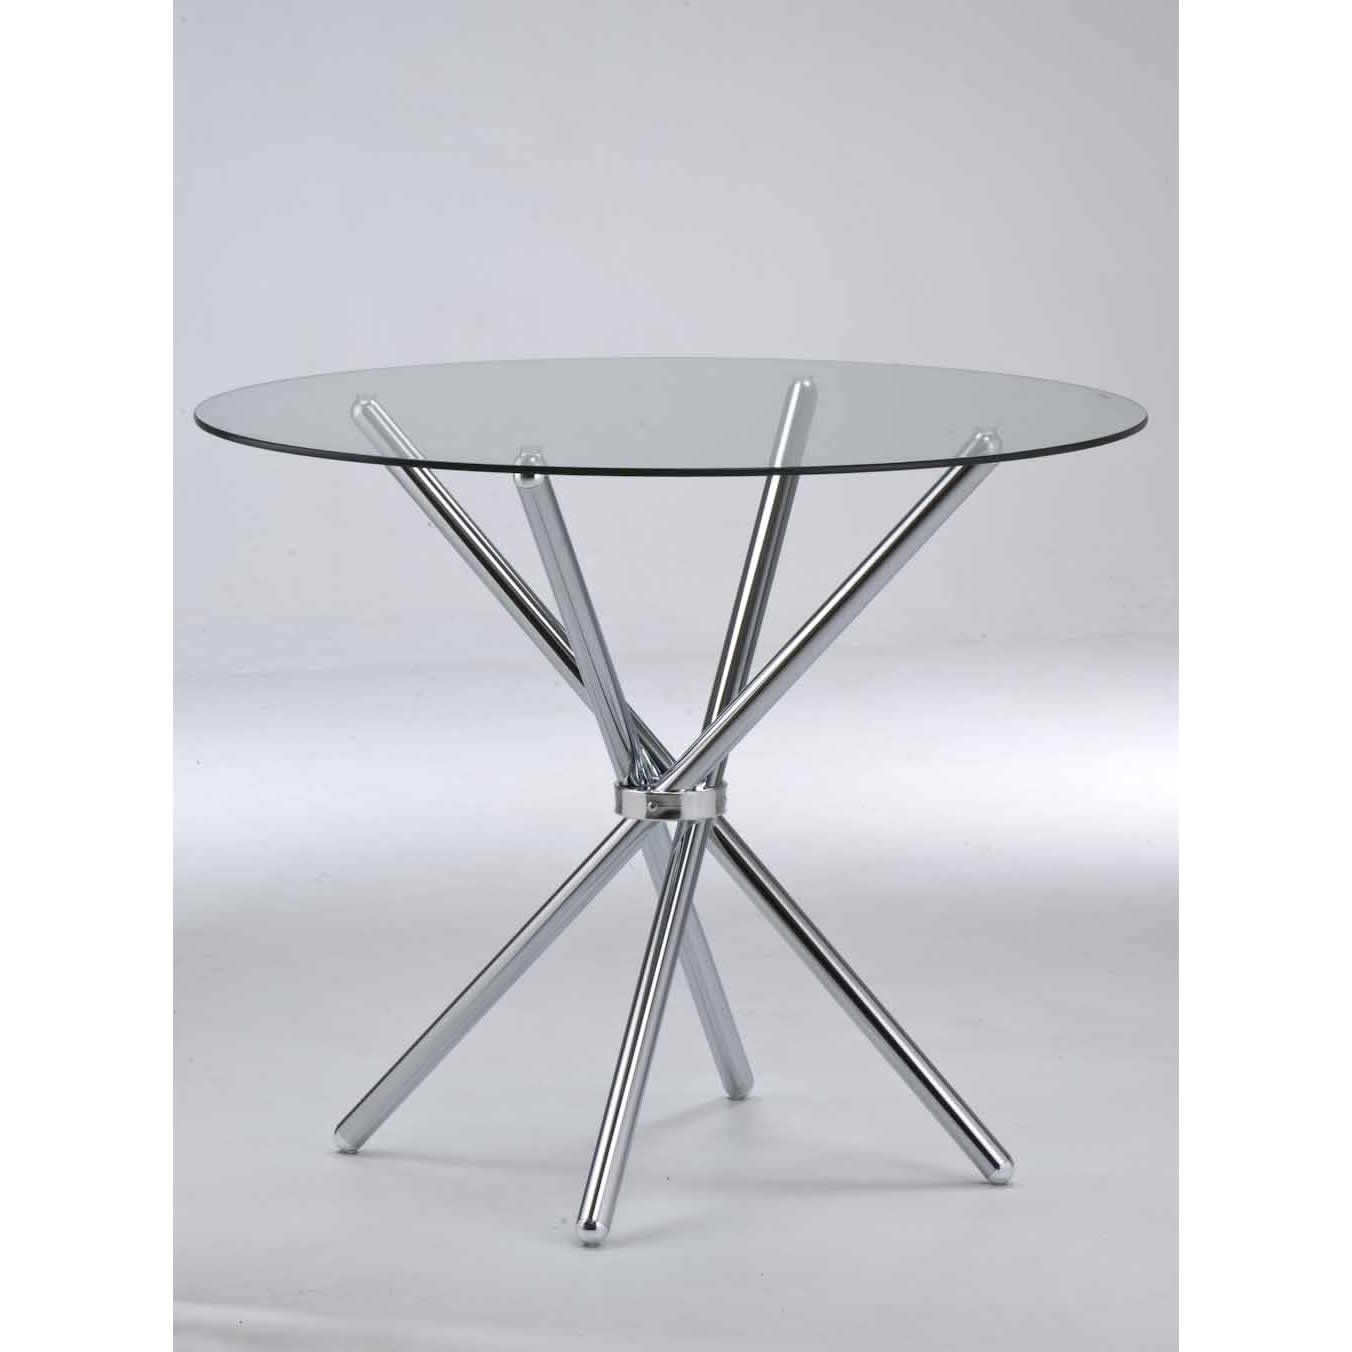 Verona Round Dining Table Clear Tempered Glass/chrome Legs Intended For Latest Chrome Dining Tables With Tempered Glass (Gallery 1 of 30)